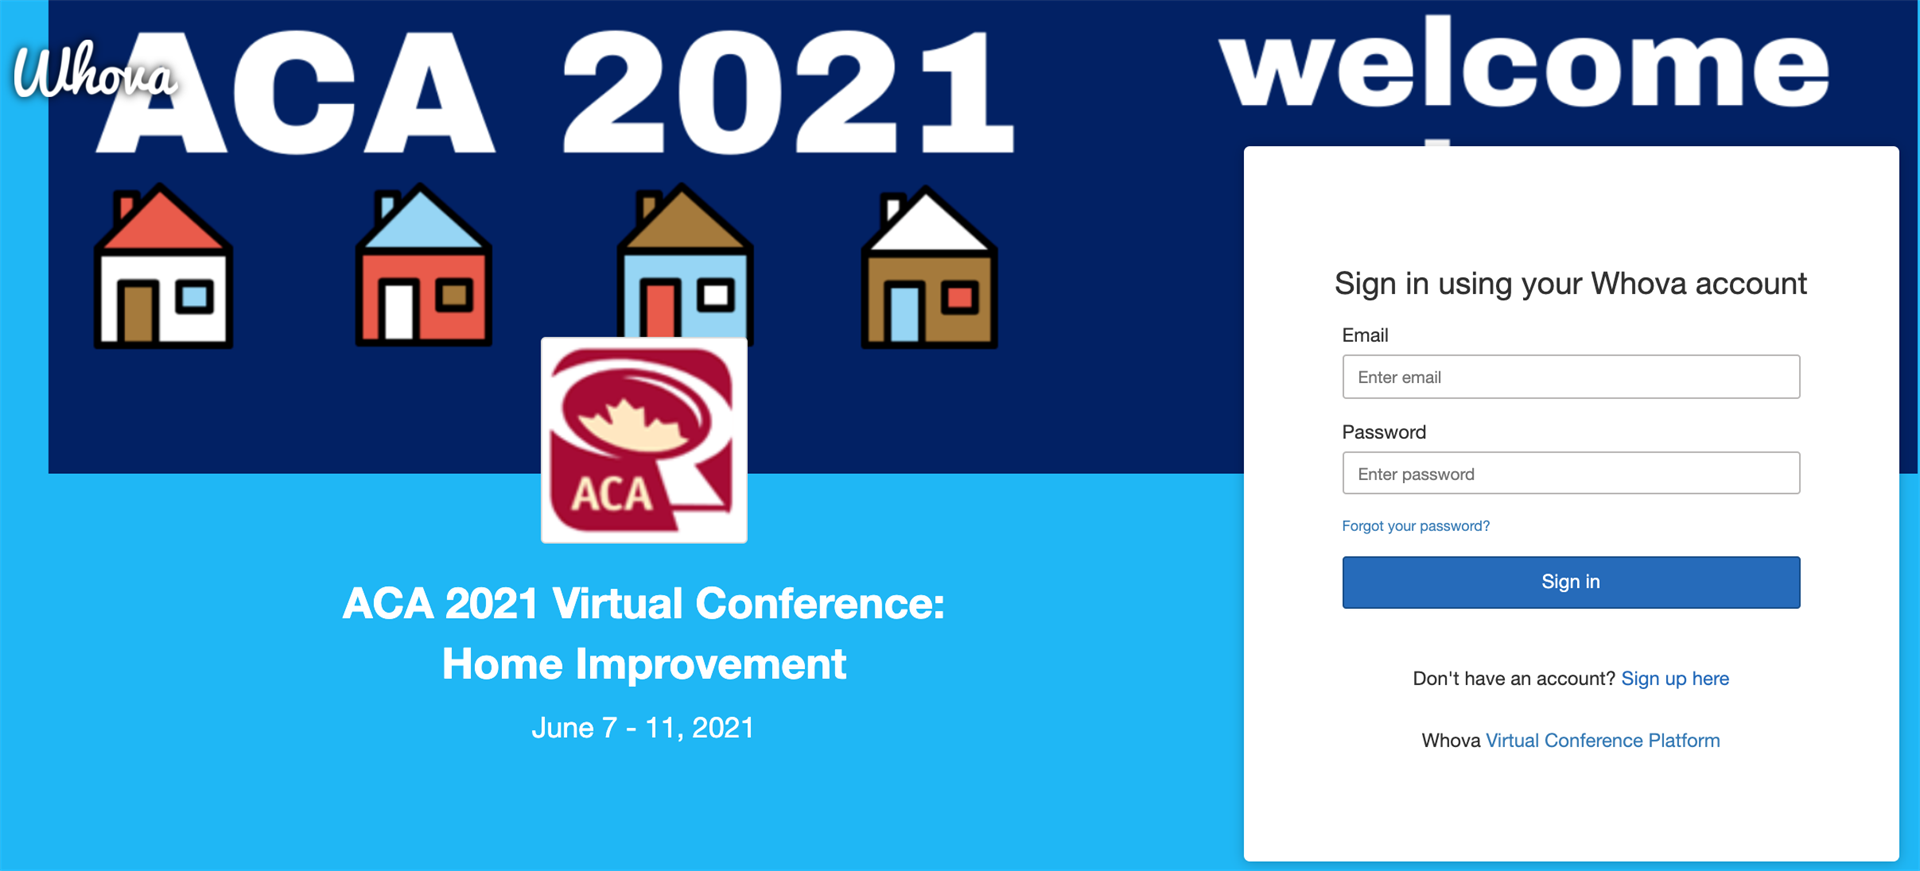 Screenshot of ACA 2021 Whova web app sign-in page